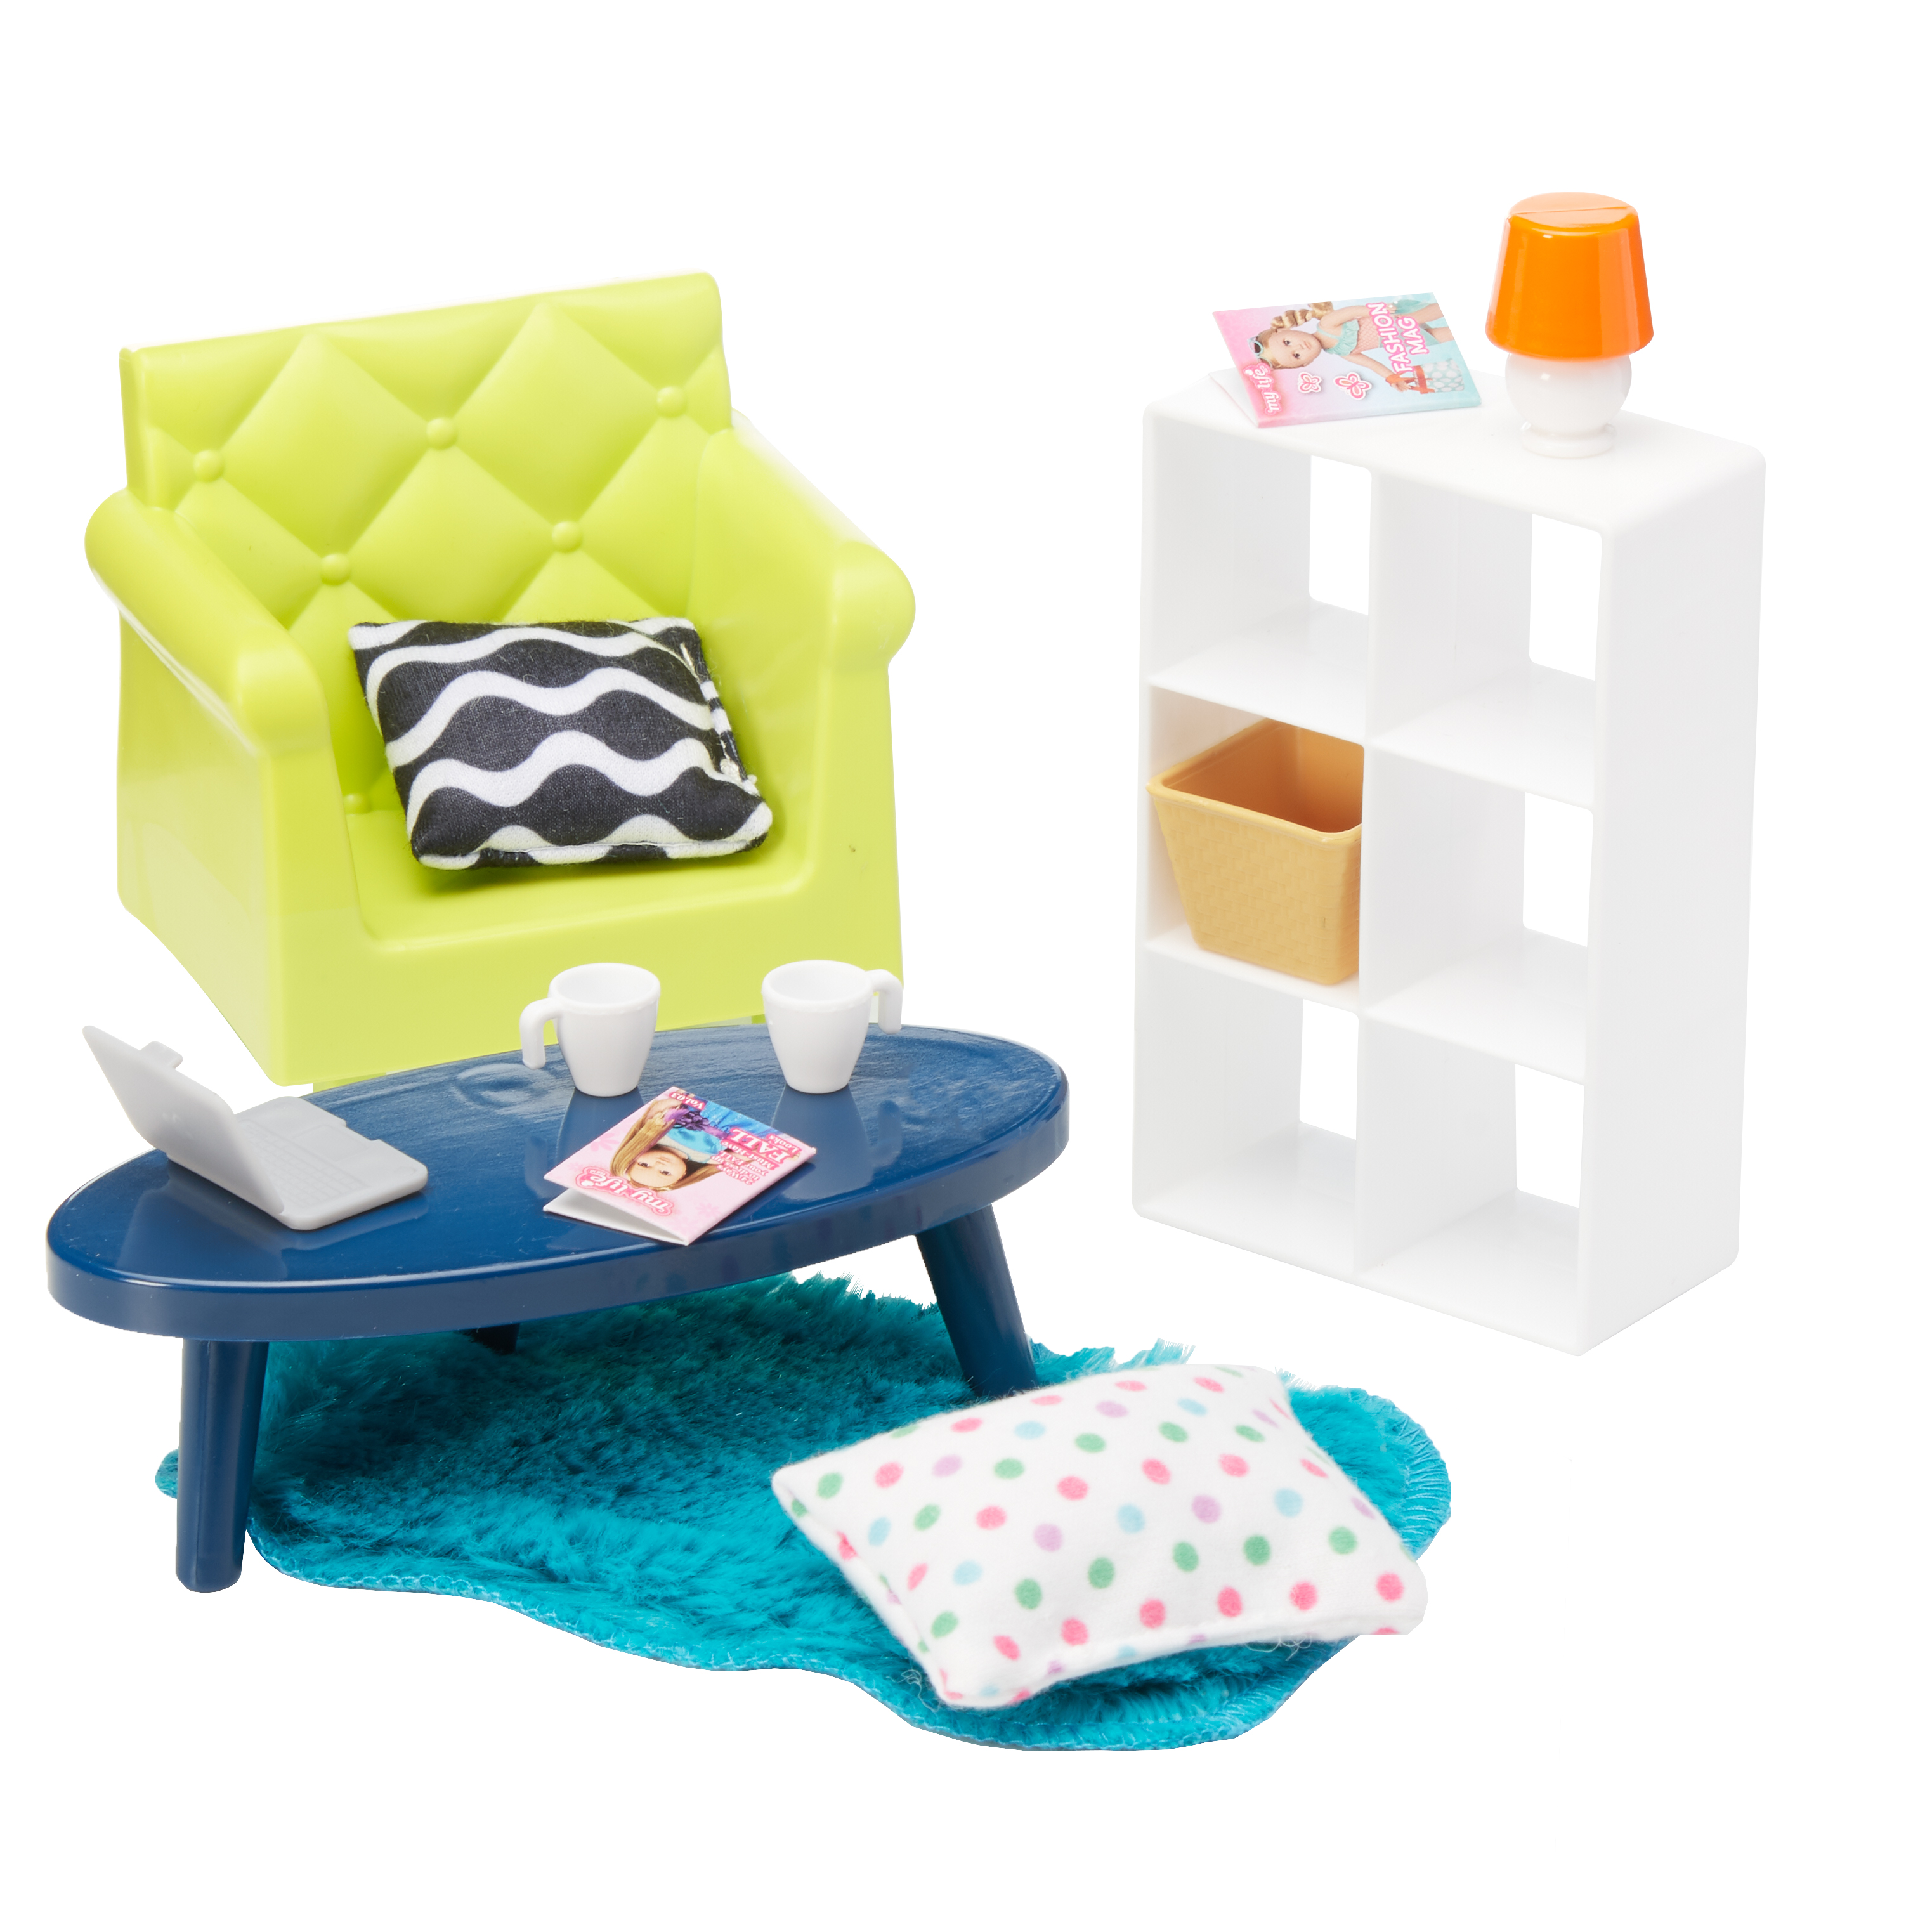 "My Life As Mini Living Room 13-Piece Play Set, for 7"" Mini Dolls"